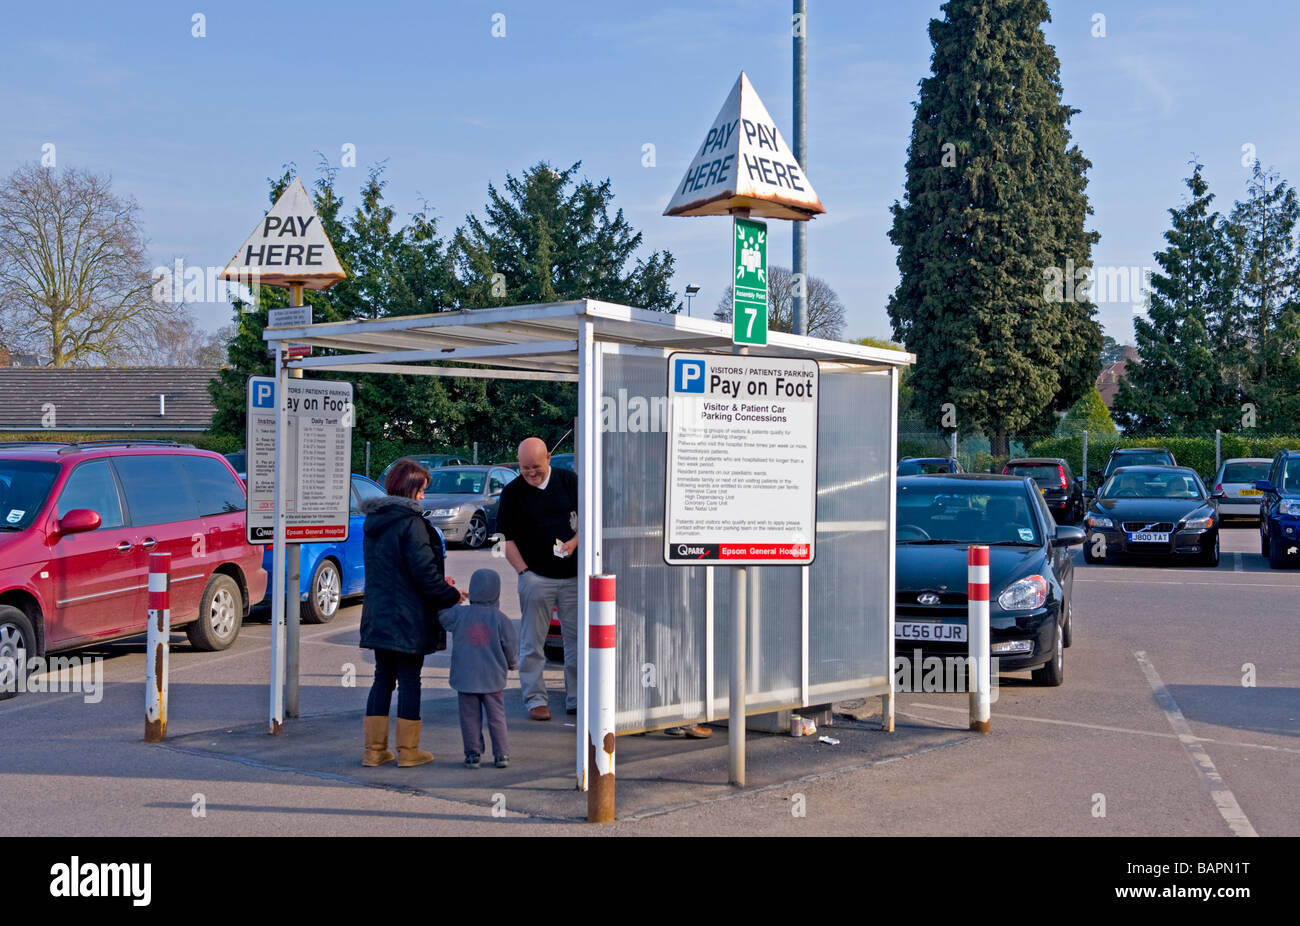 Pay Point at Epsom General Hospital Public Car Park. - Stock Image